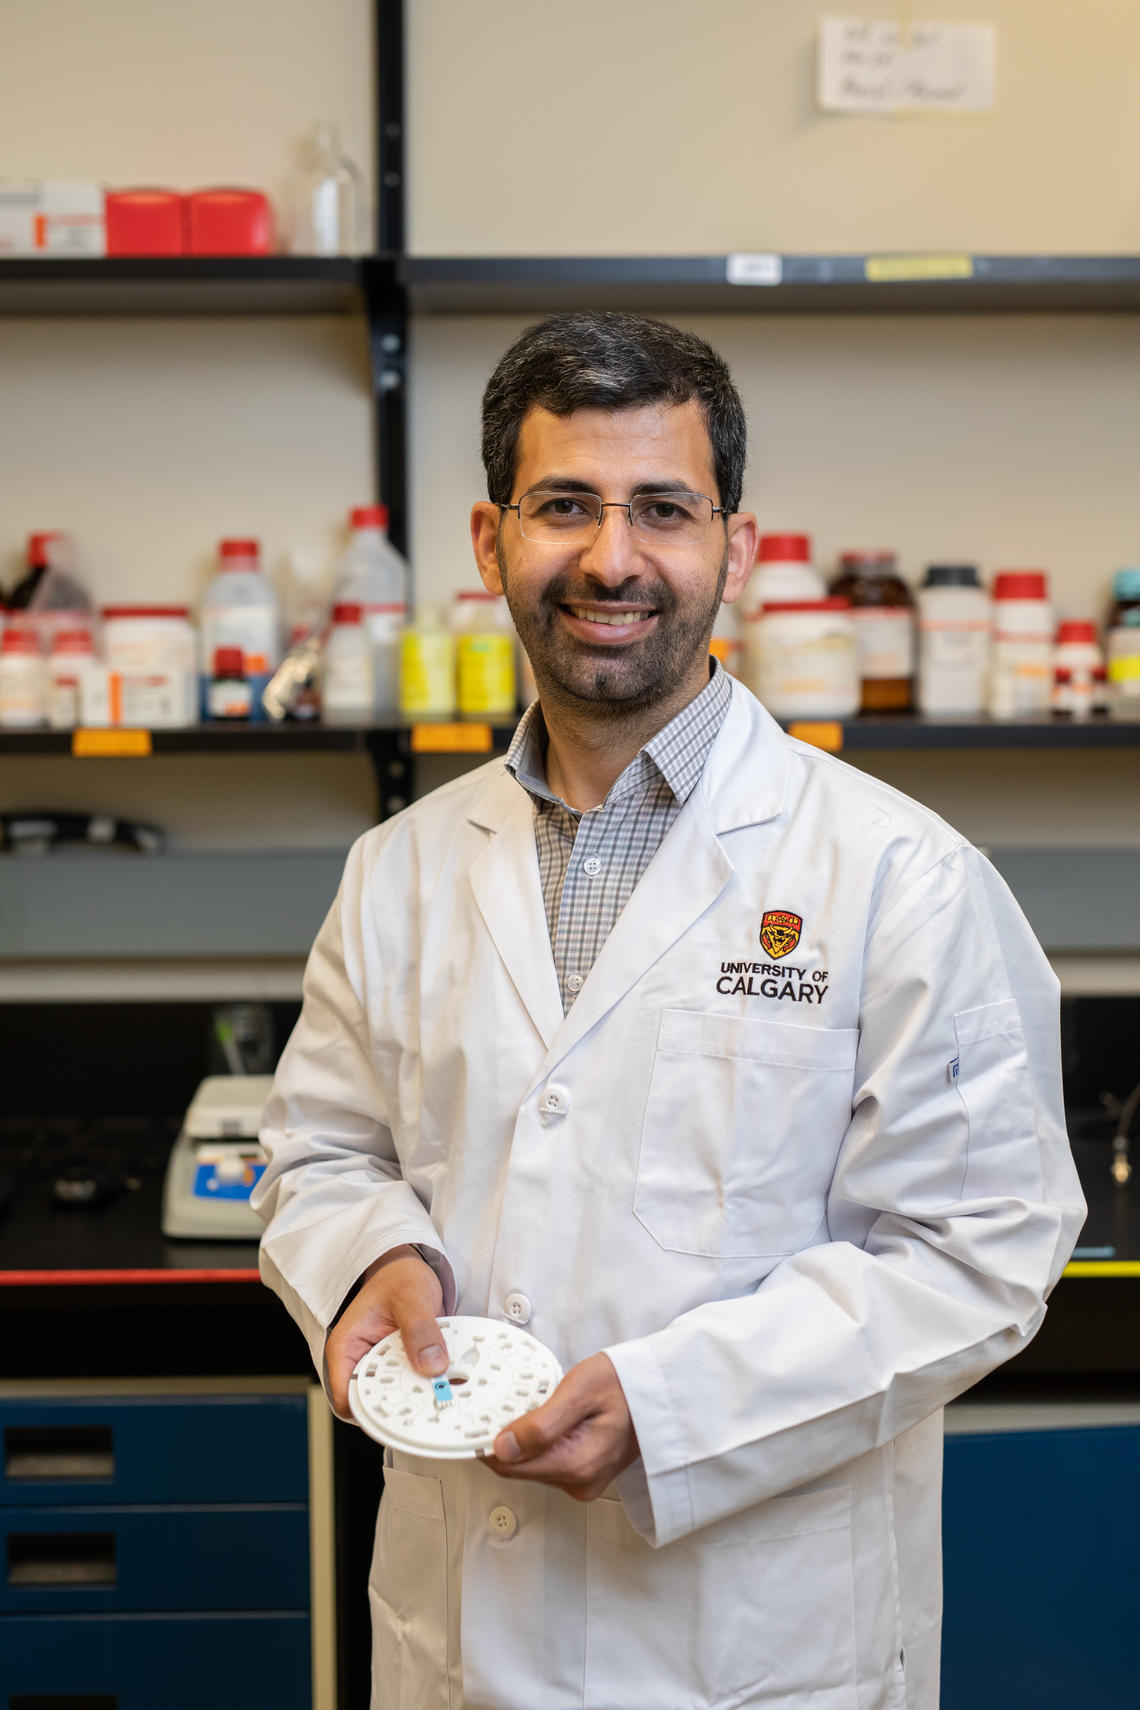 Amir Sanati-Nezhad is assistant professor in the Department of Mechanical and Manufacturing Engineering. His research is working toward quickly and efficiently analyzing every aspect of a blood sample, speeding up treatment time for patients.